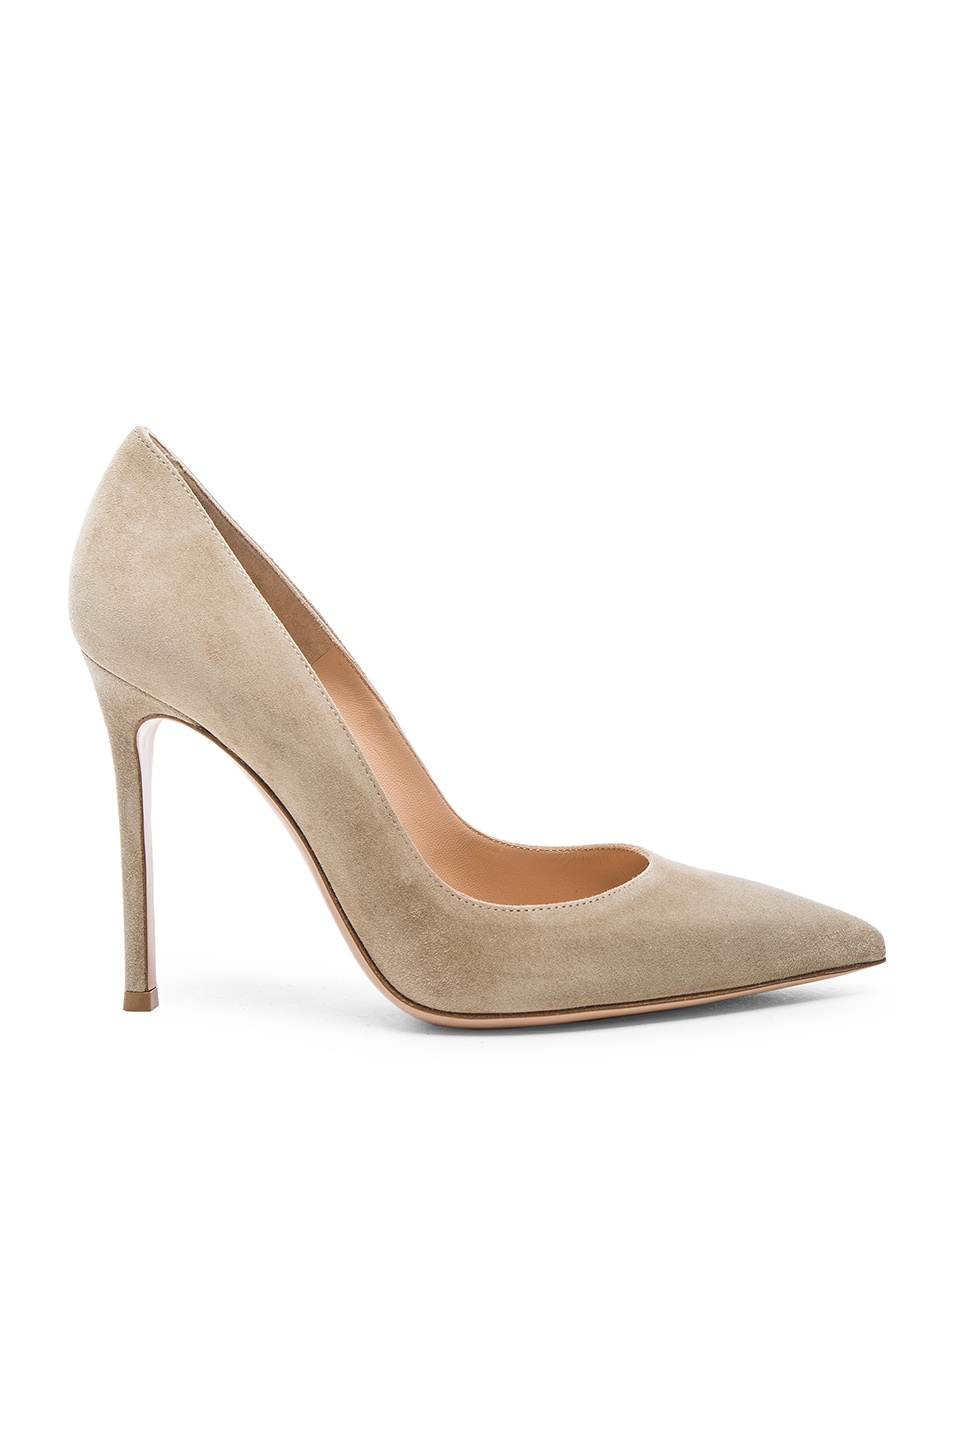 Image 1 of Gianvito Rossi Suede Gianvito Heels in Camel